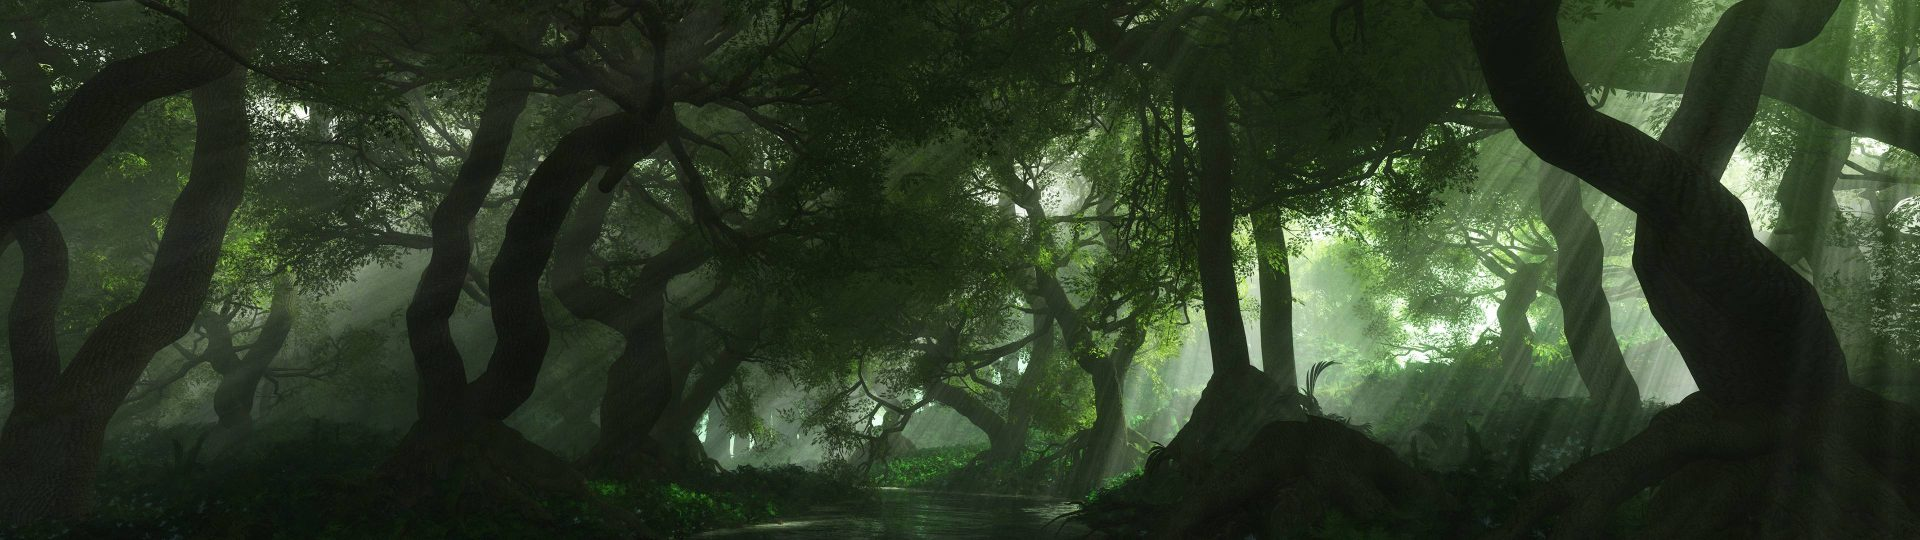 beautiful forest wallpaper hd